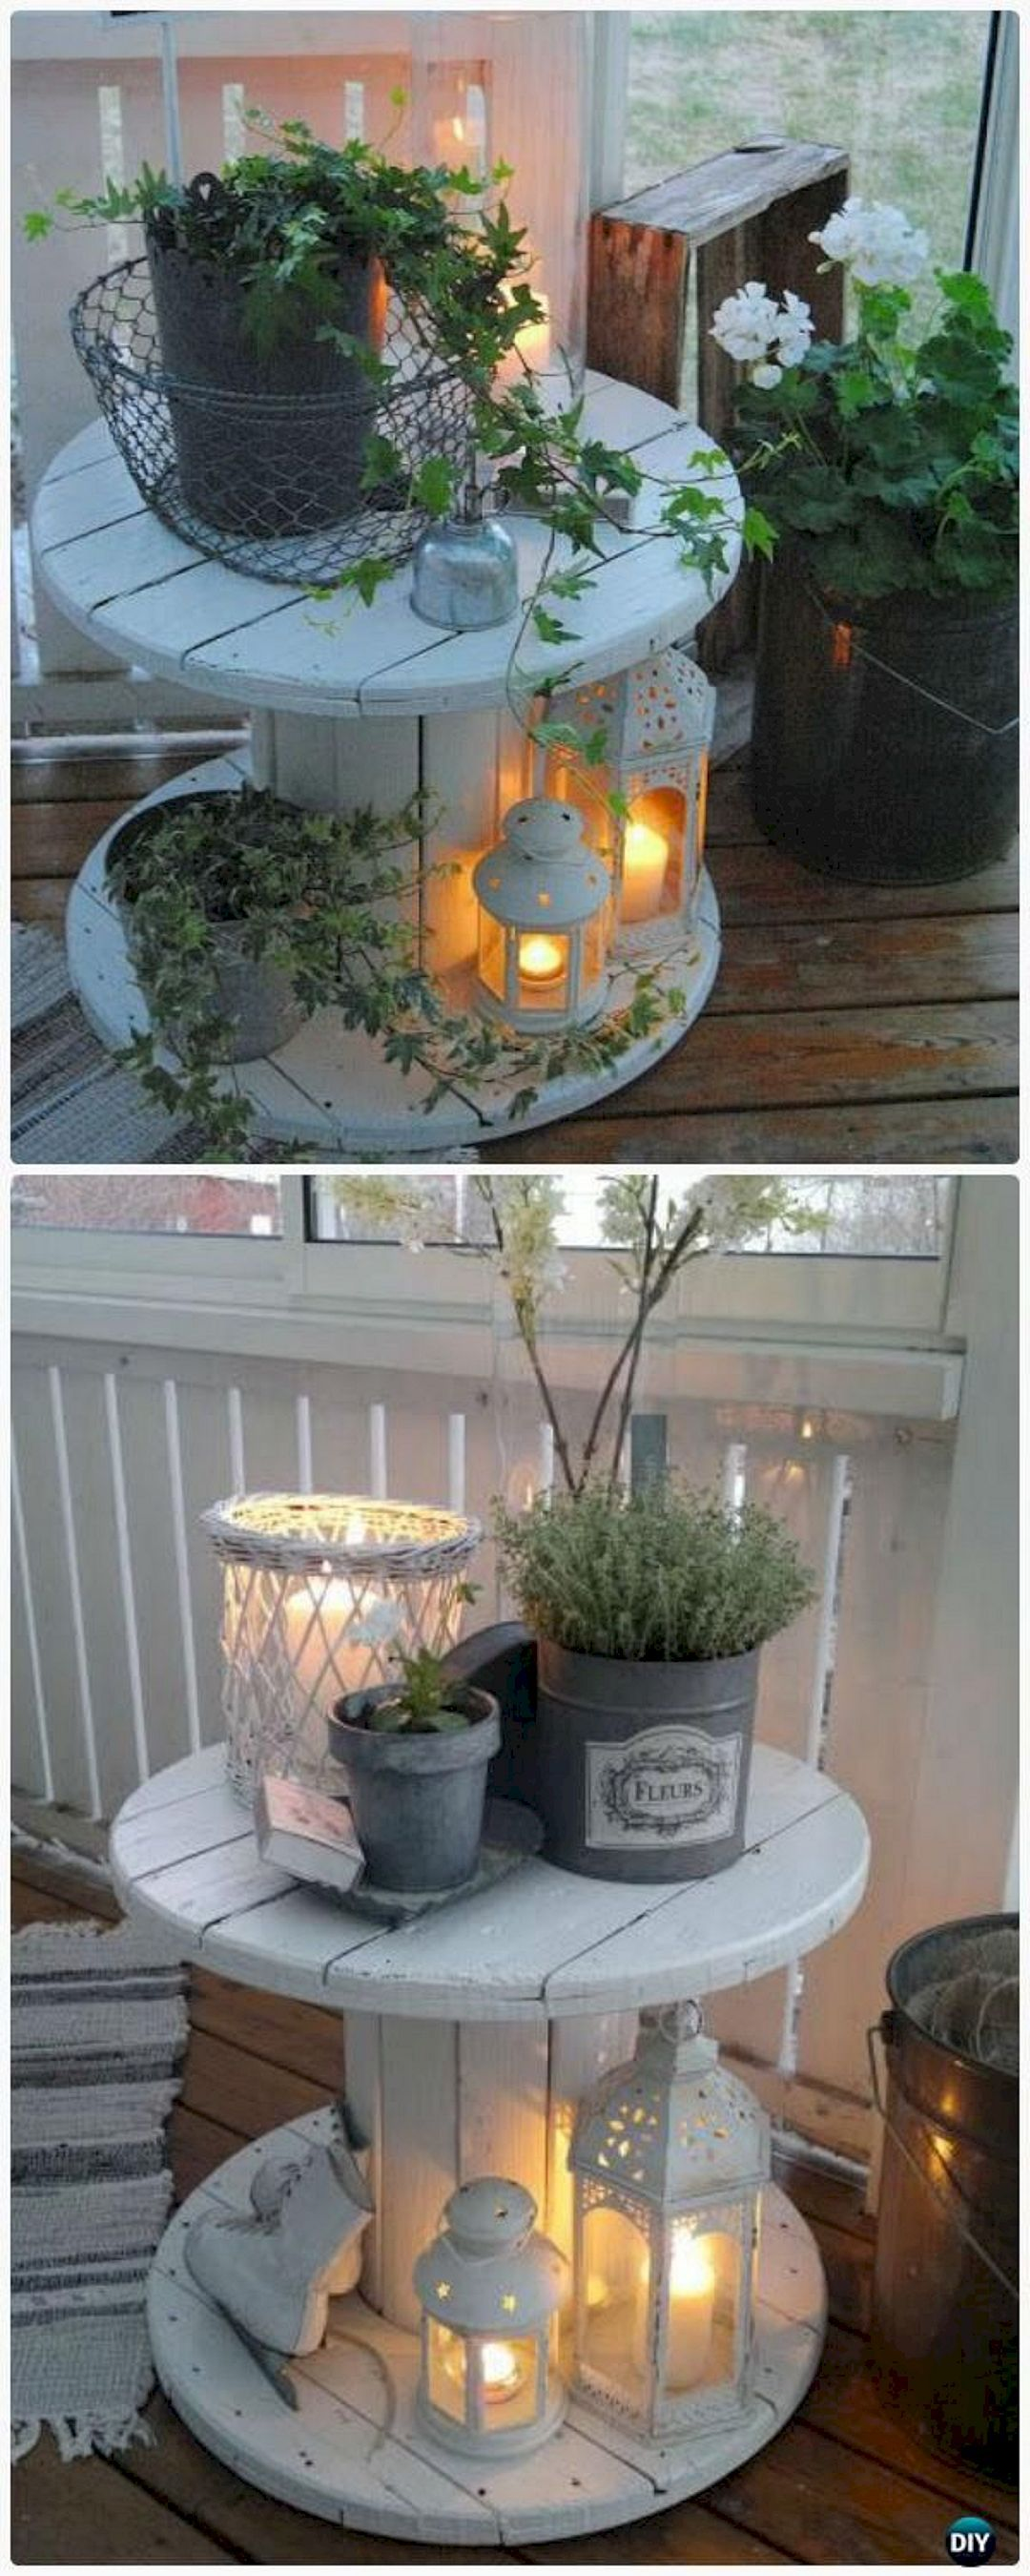 Cool Top 88 Marvelous DIY Recycled Wire Spool Furniture Ideas For Your Home  https:/